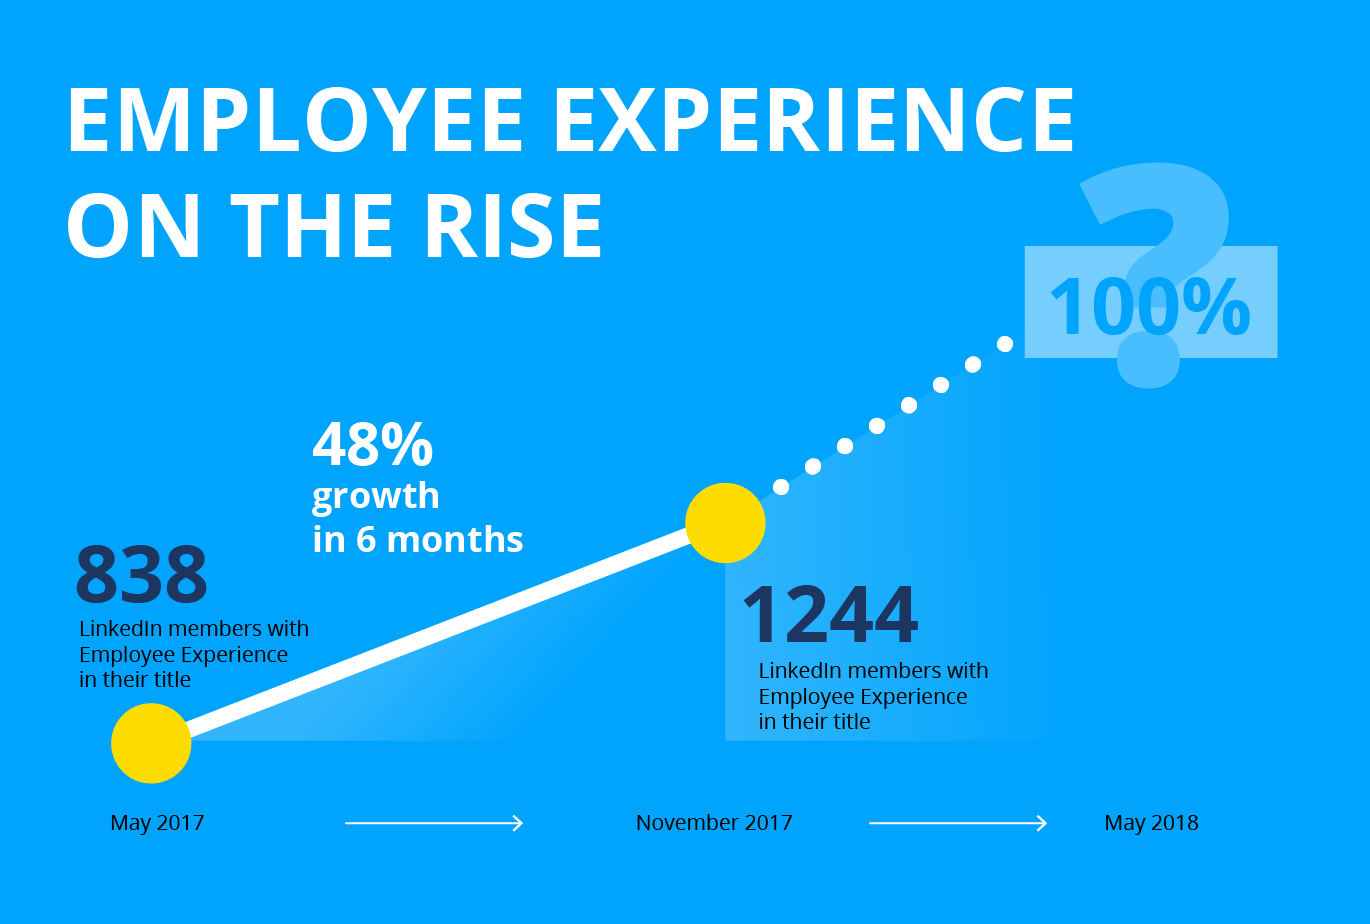 Employee Experience on the Rise